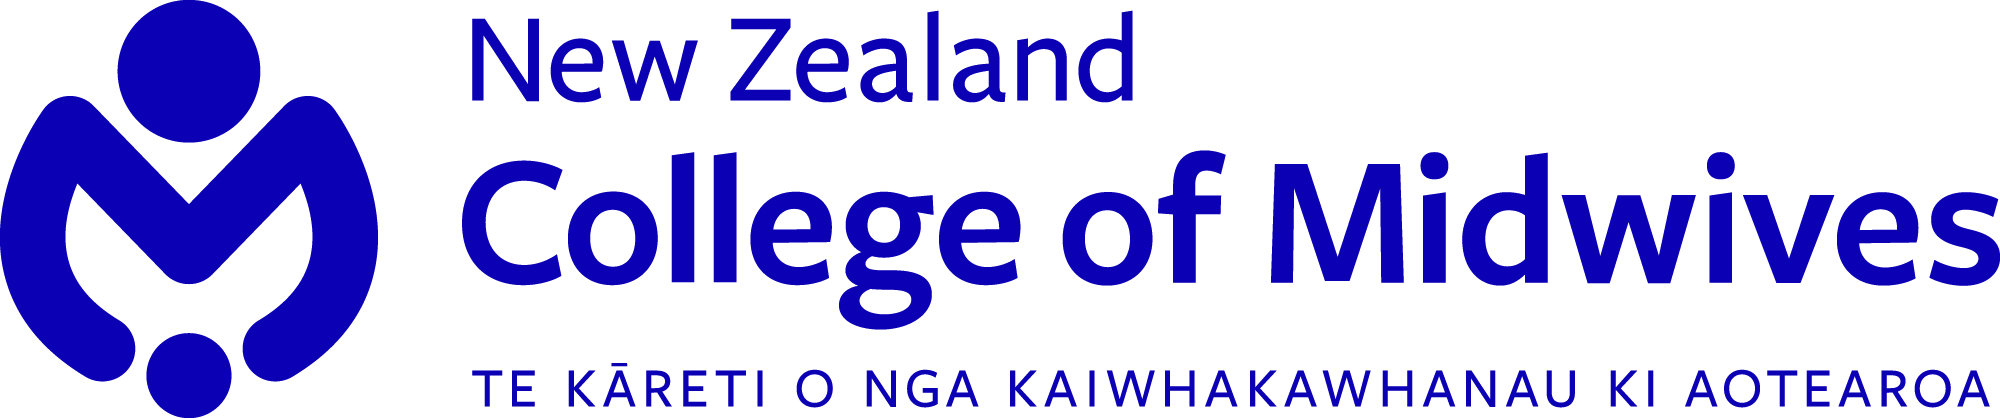 New Zealand College of Midwives